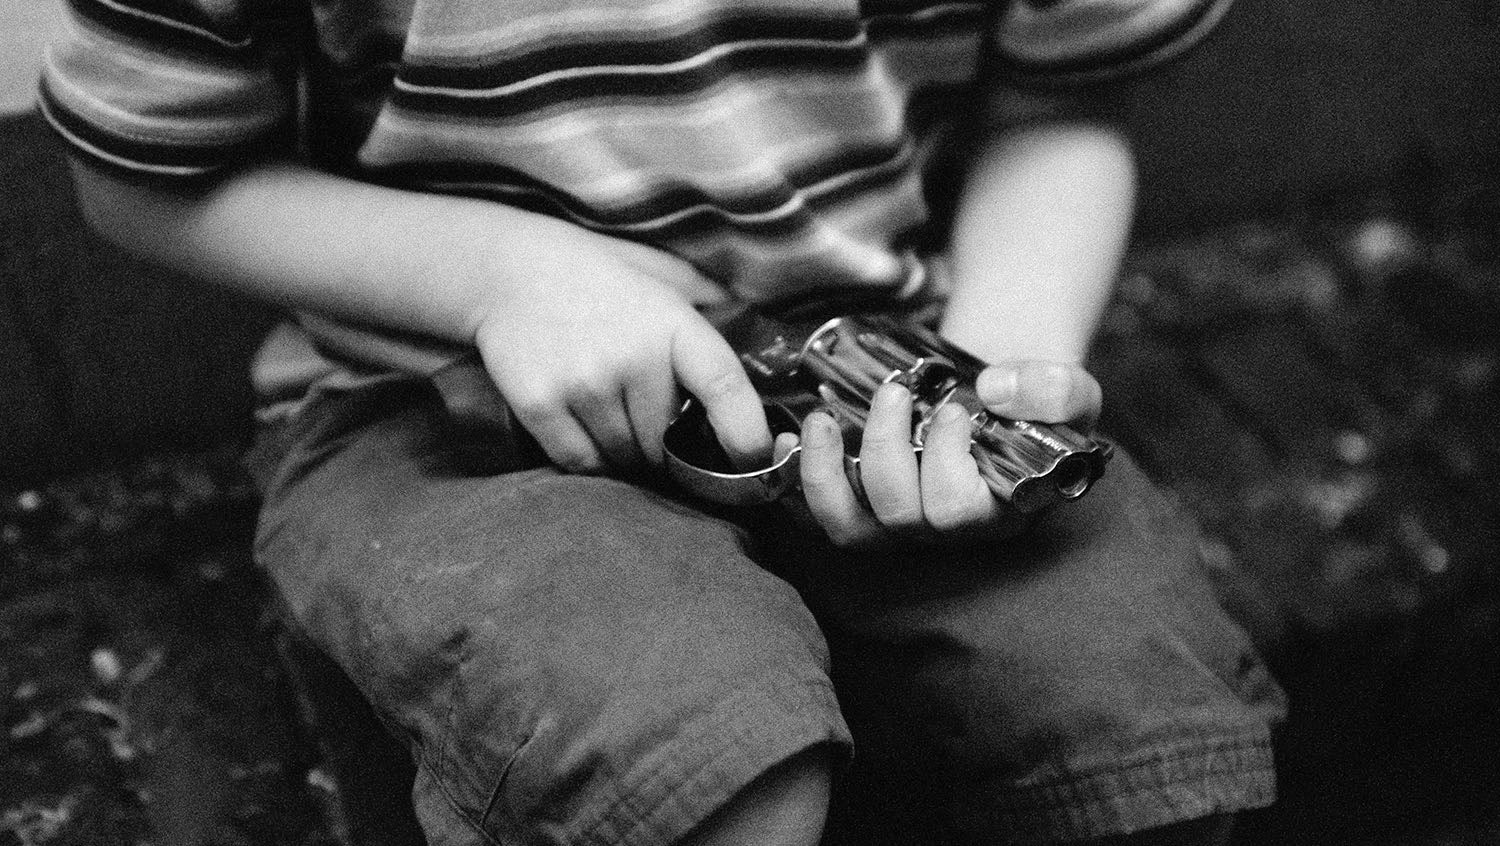 A recent study suggests that in-clinic firearm safety counseling is not only possible, but is also well-received by most families and increases a caregiver's understanding of the risks their children may face when firearms are stored improperly.